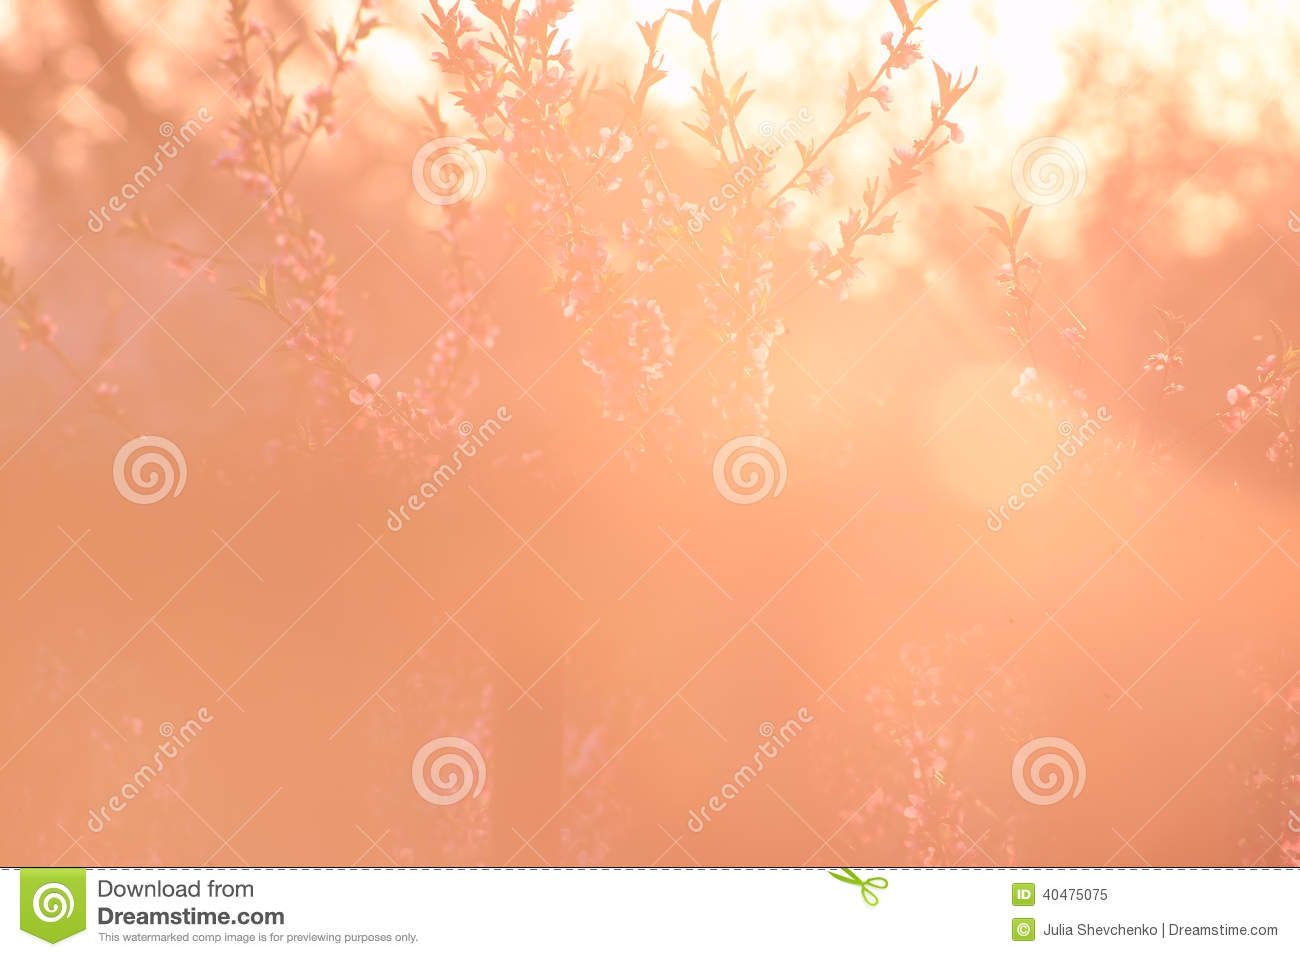 47 109 peach color photos free royalty free stock photos from dreamstime dreamstime com